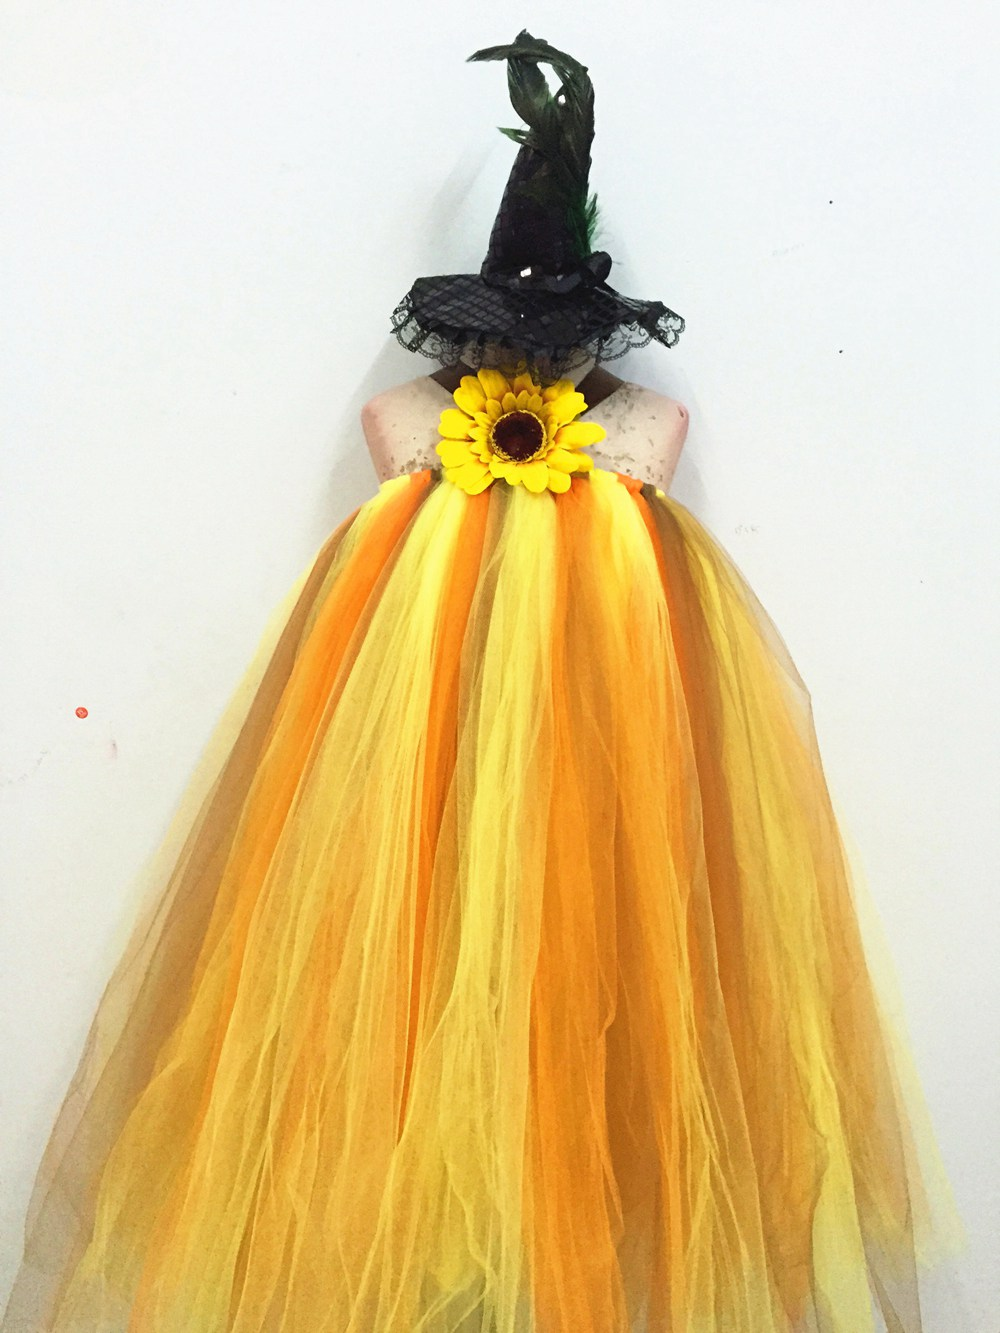 Halloween Costumes Pumpkin Festival Party Dress Girls Dress Up Dress 5-year-old Girl Dress<br><br>Aliexpress